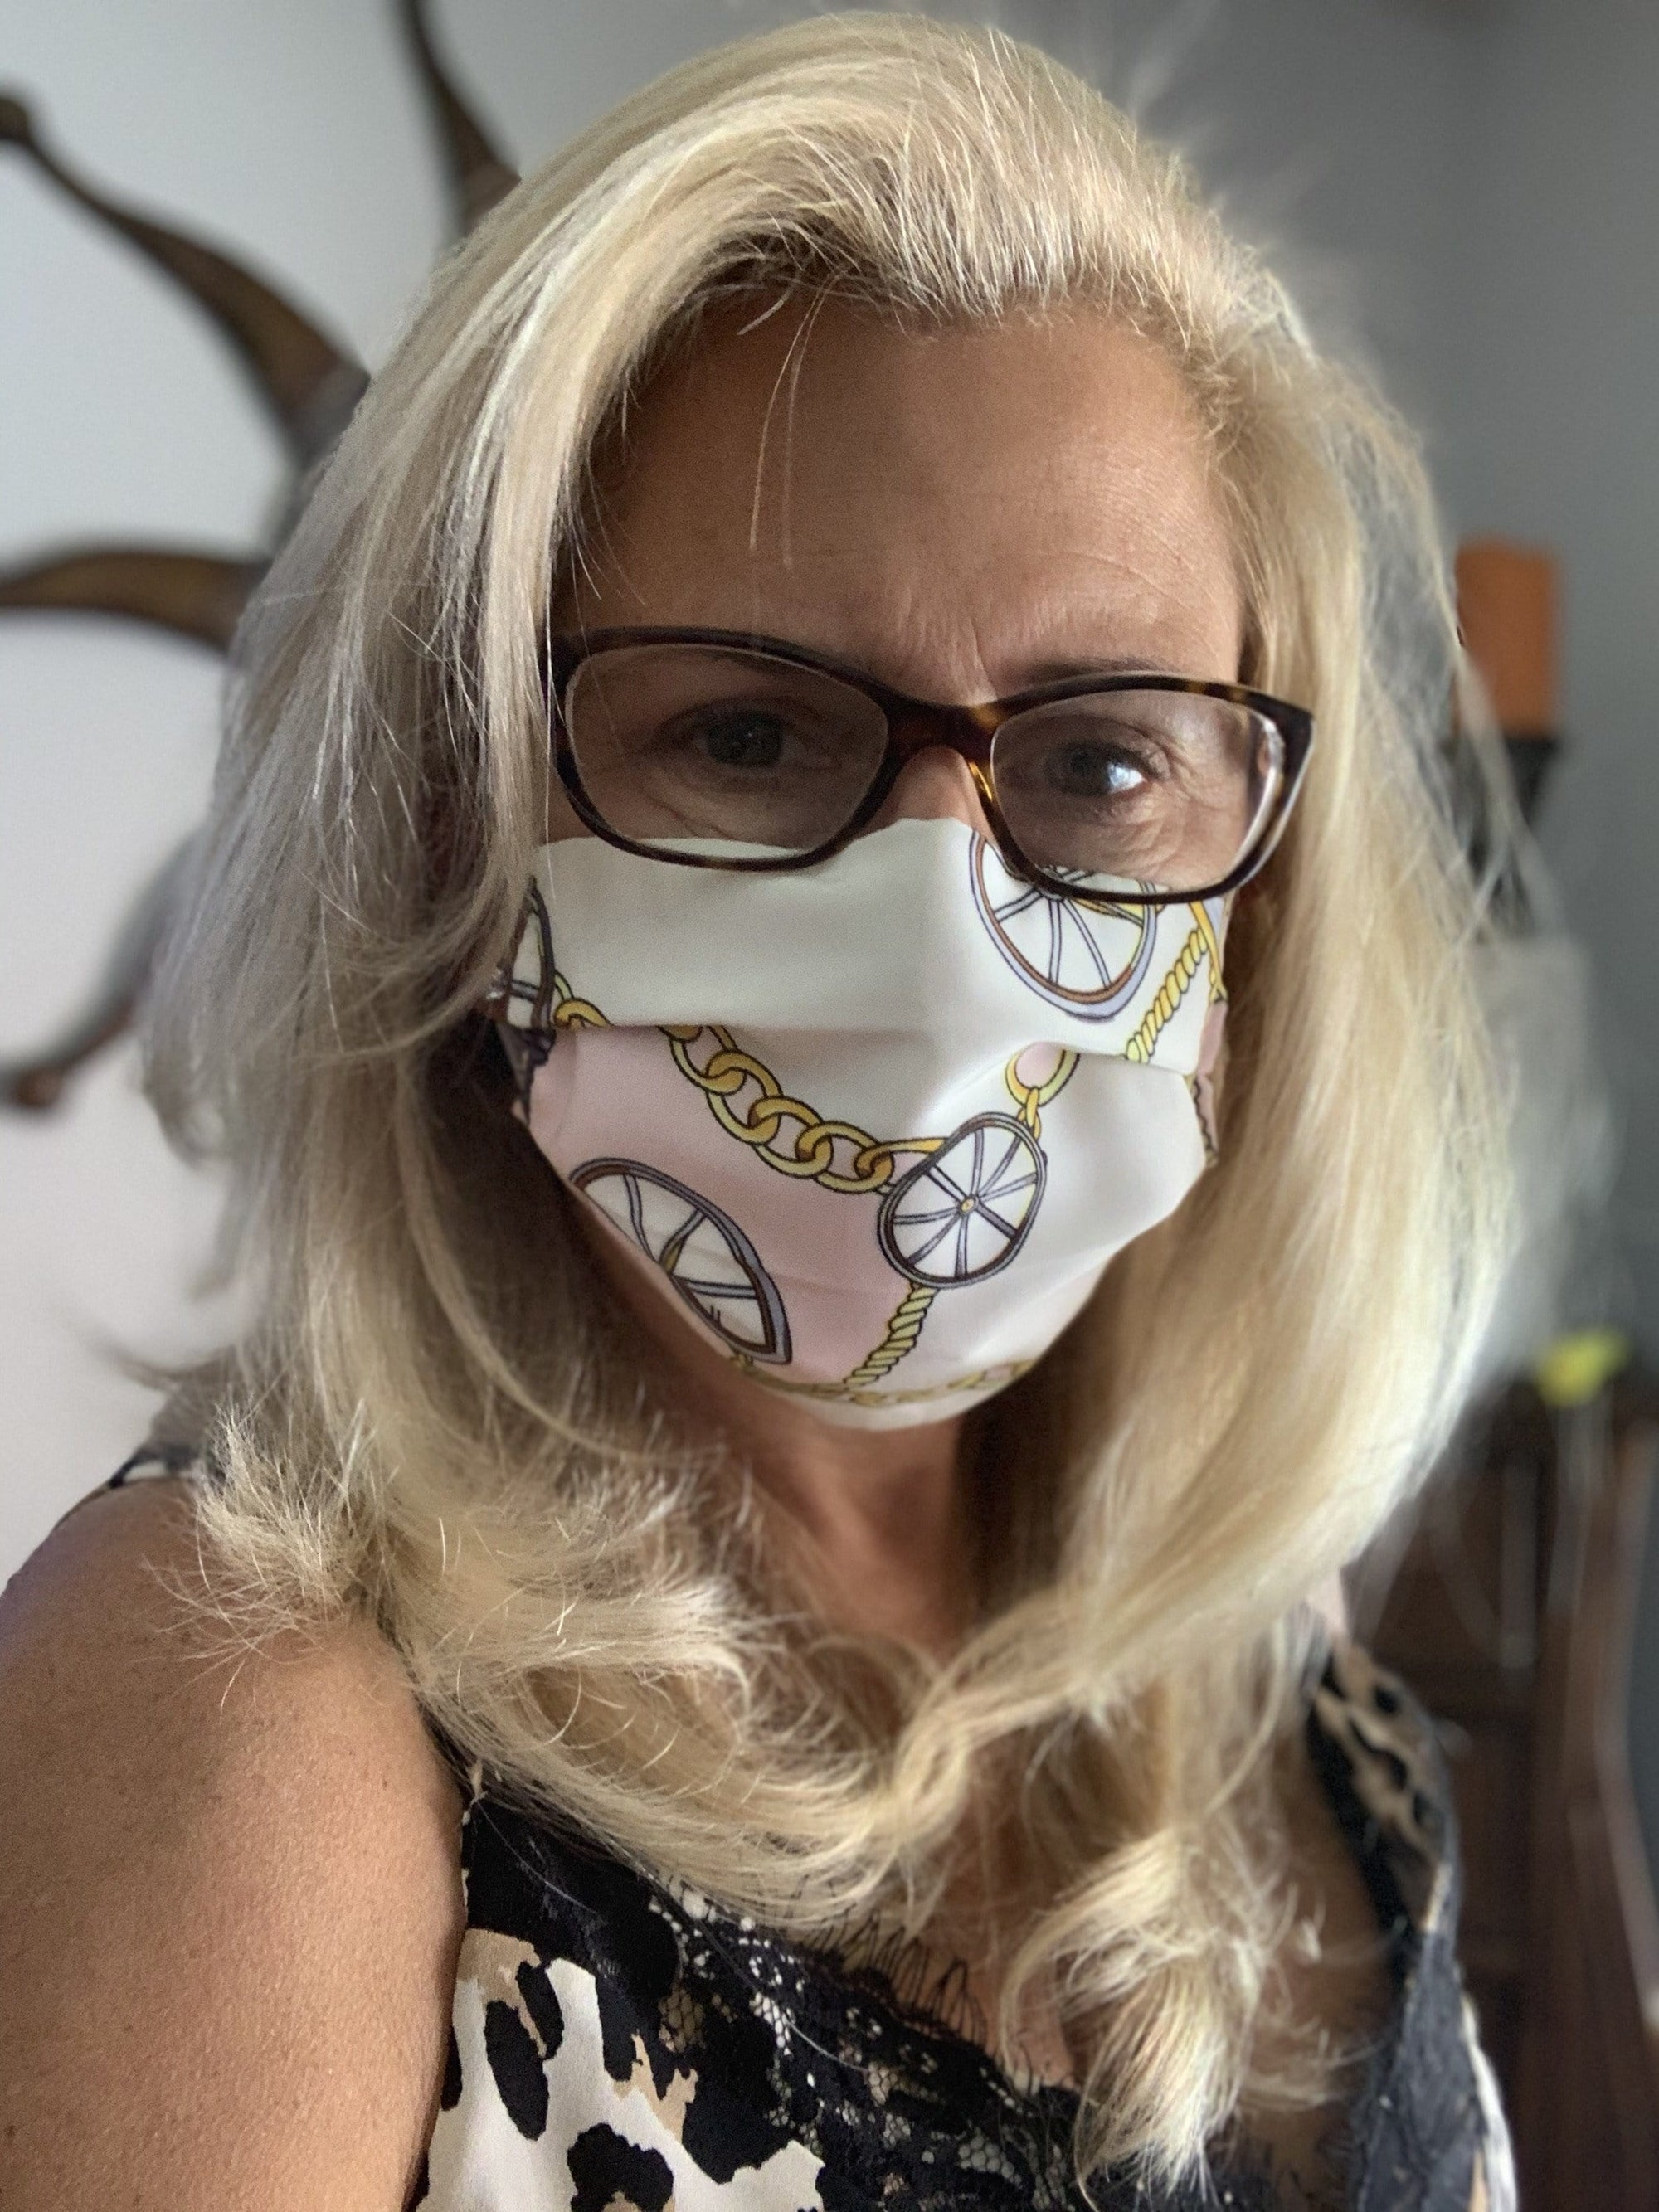 Stacy Bradley Design Face Mask Pink Scarf equestrian team apparel online tack store mobile tack store custom farm apparel custom show stable clothing equestrian lifestyle horse show clothing riding clothes horses equestrian tack store